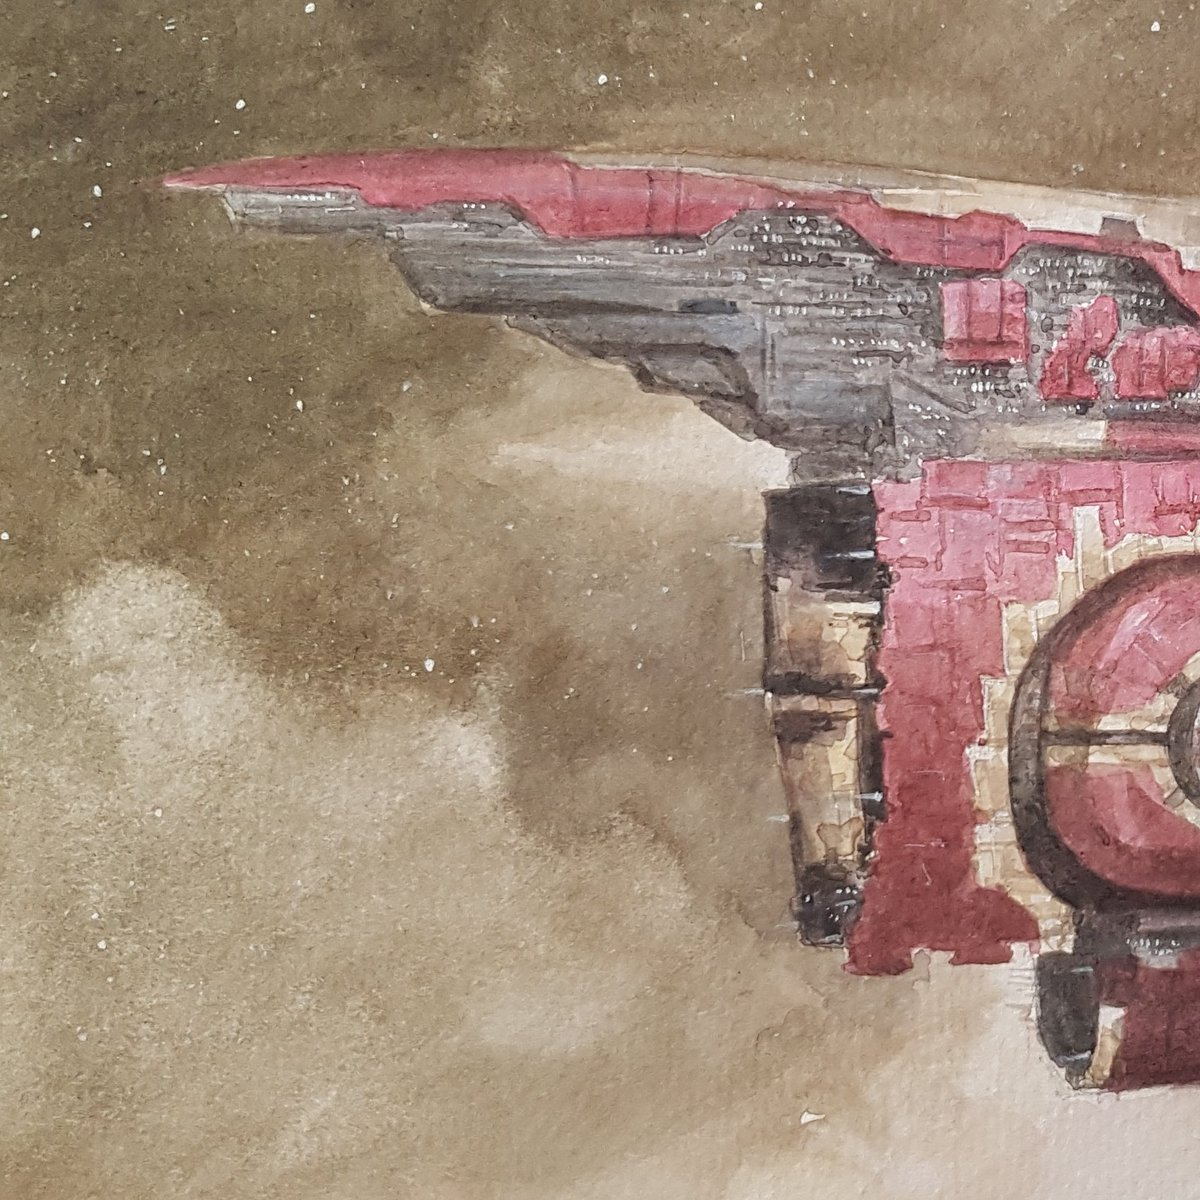 A reminder that this unique, hand painted watercolor art is now available on auction, to bid just visit : https://cutt.ly/Art-Auction And is fully licensed by CCP!! #eveonline #tweetfleet #spaceships #spaceshipsketch #spaceshipart #scifiartwork #scififantasy #scifidaily #dailyscifi pic.twitter.com/lgDGWneoOk